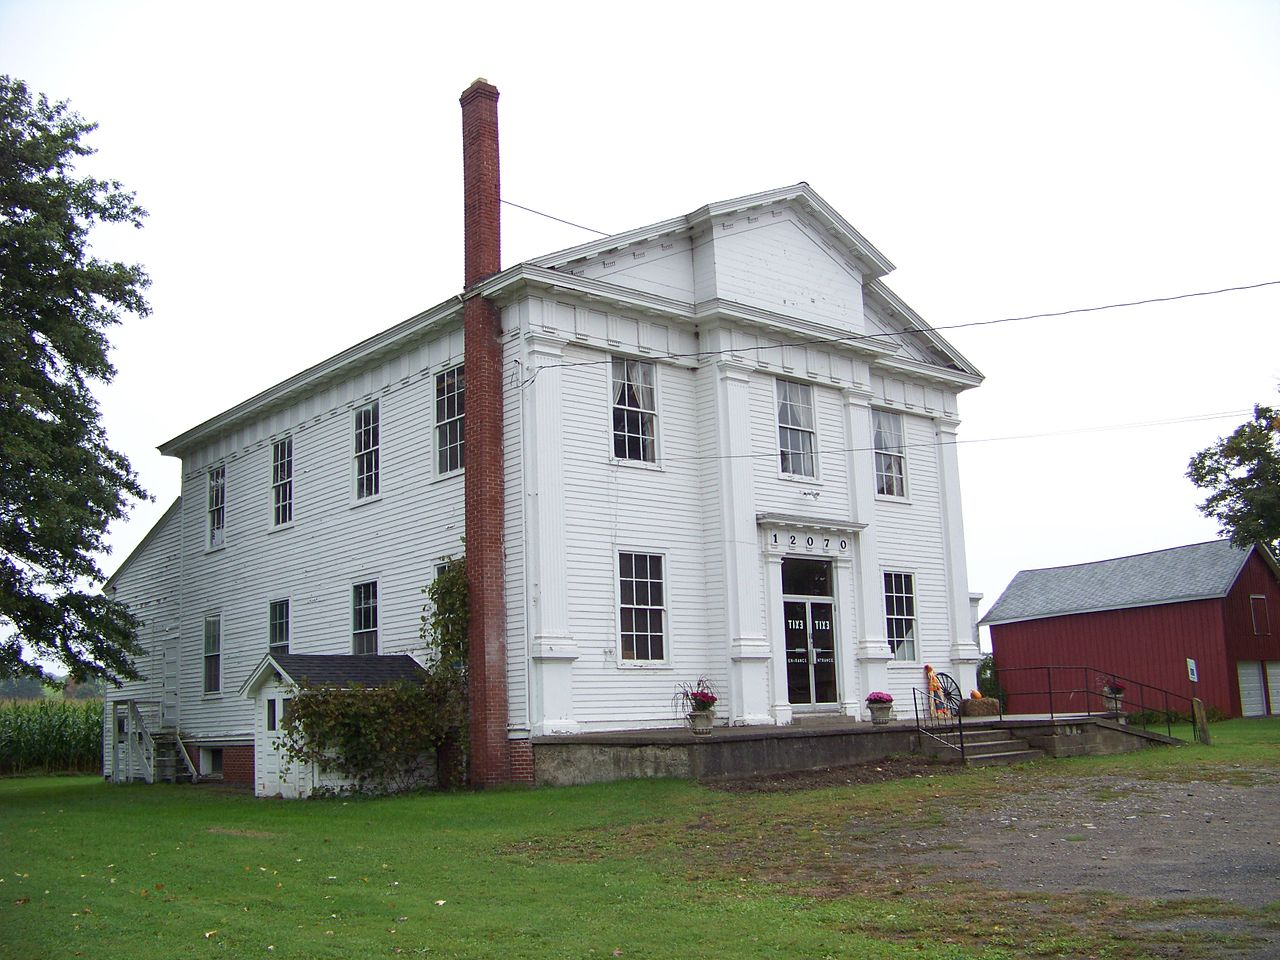 The Old Sardinia Town Hall was built in 1830 and is home to the Sardinia Historical Society and Museum.